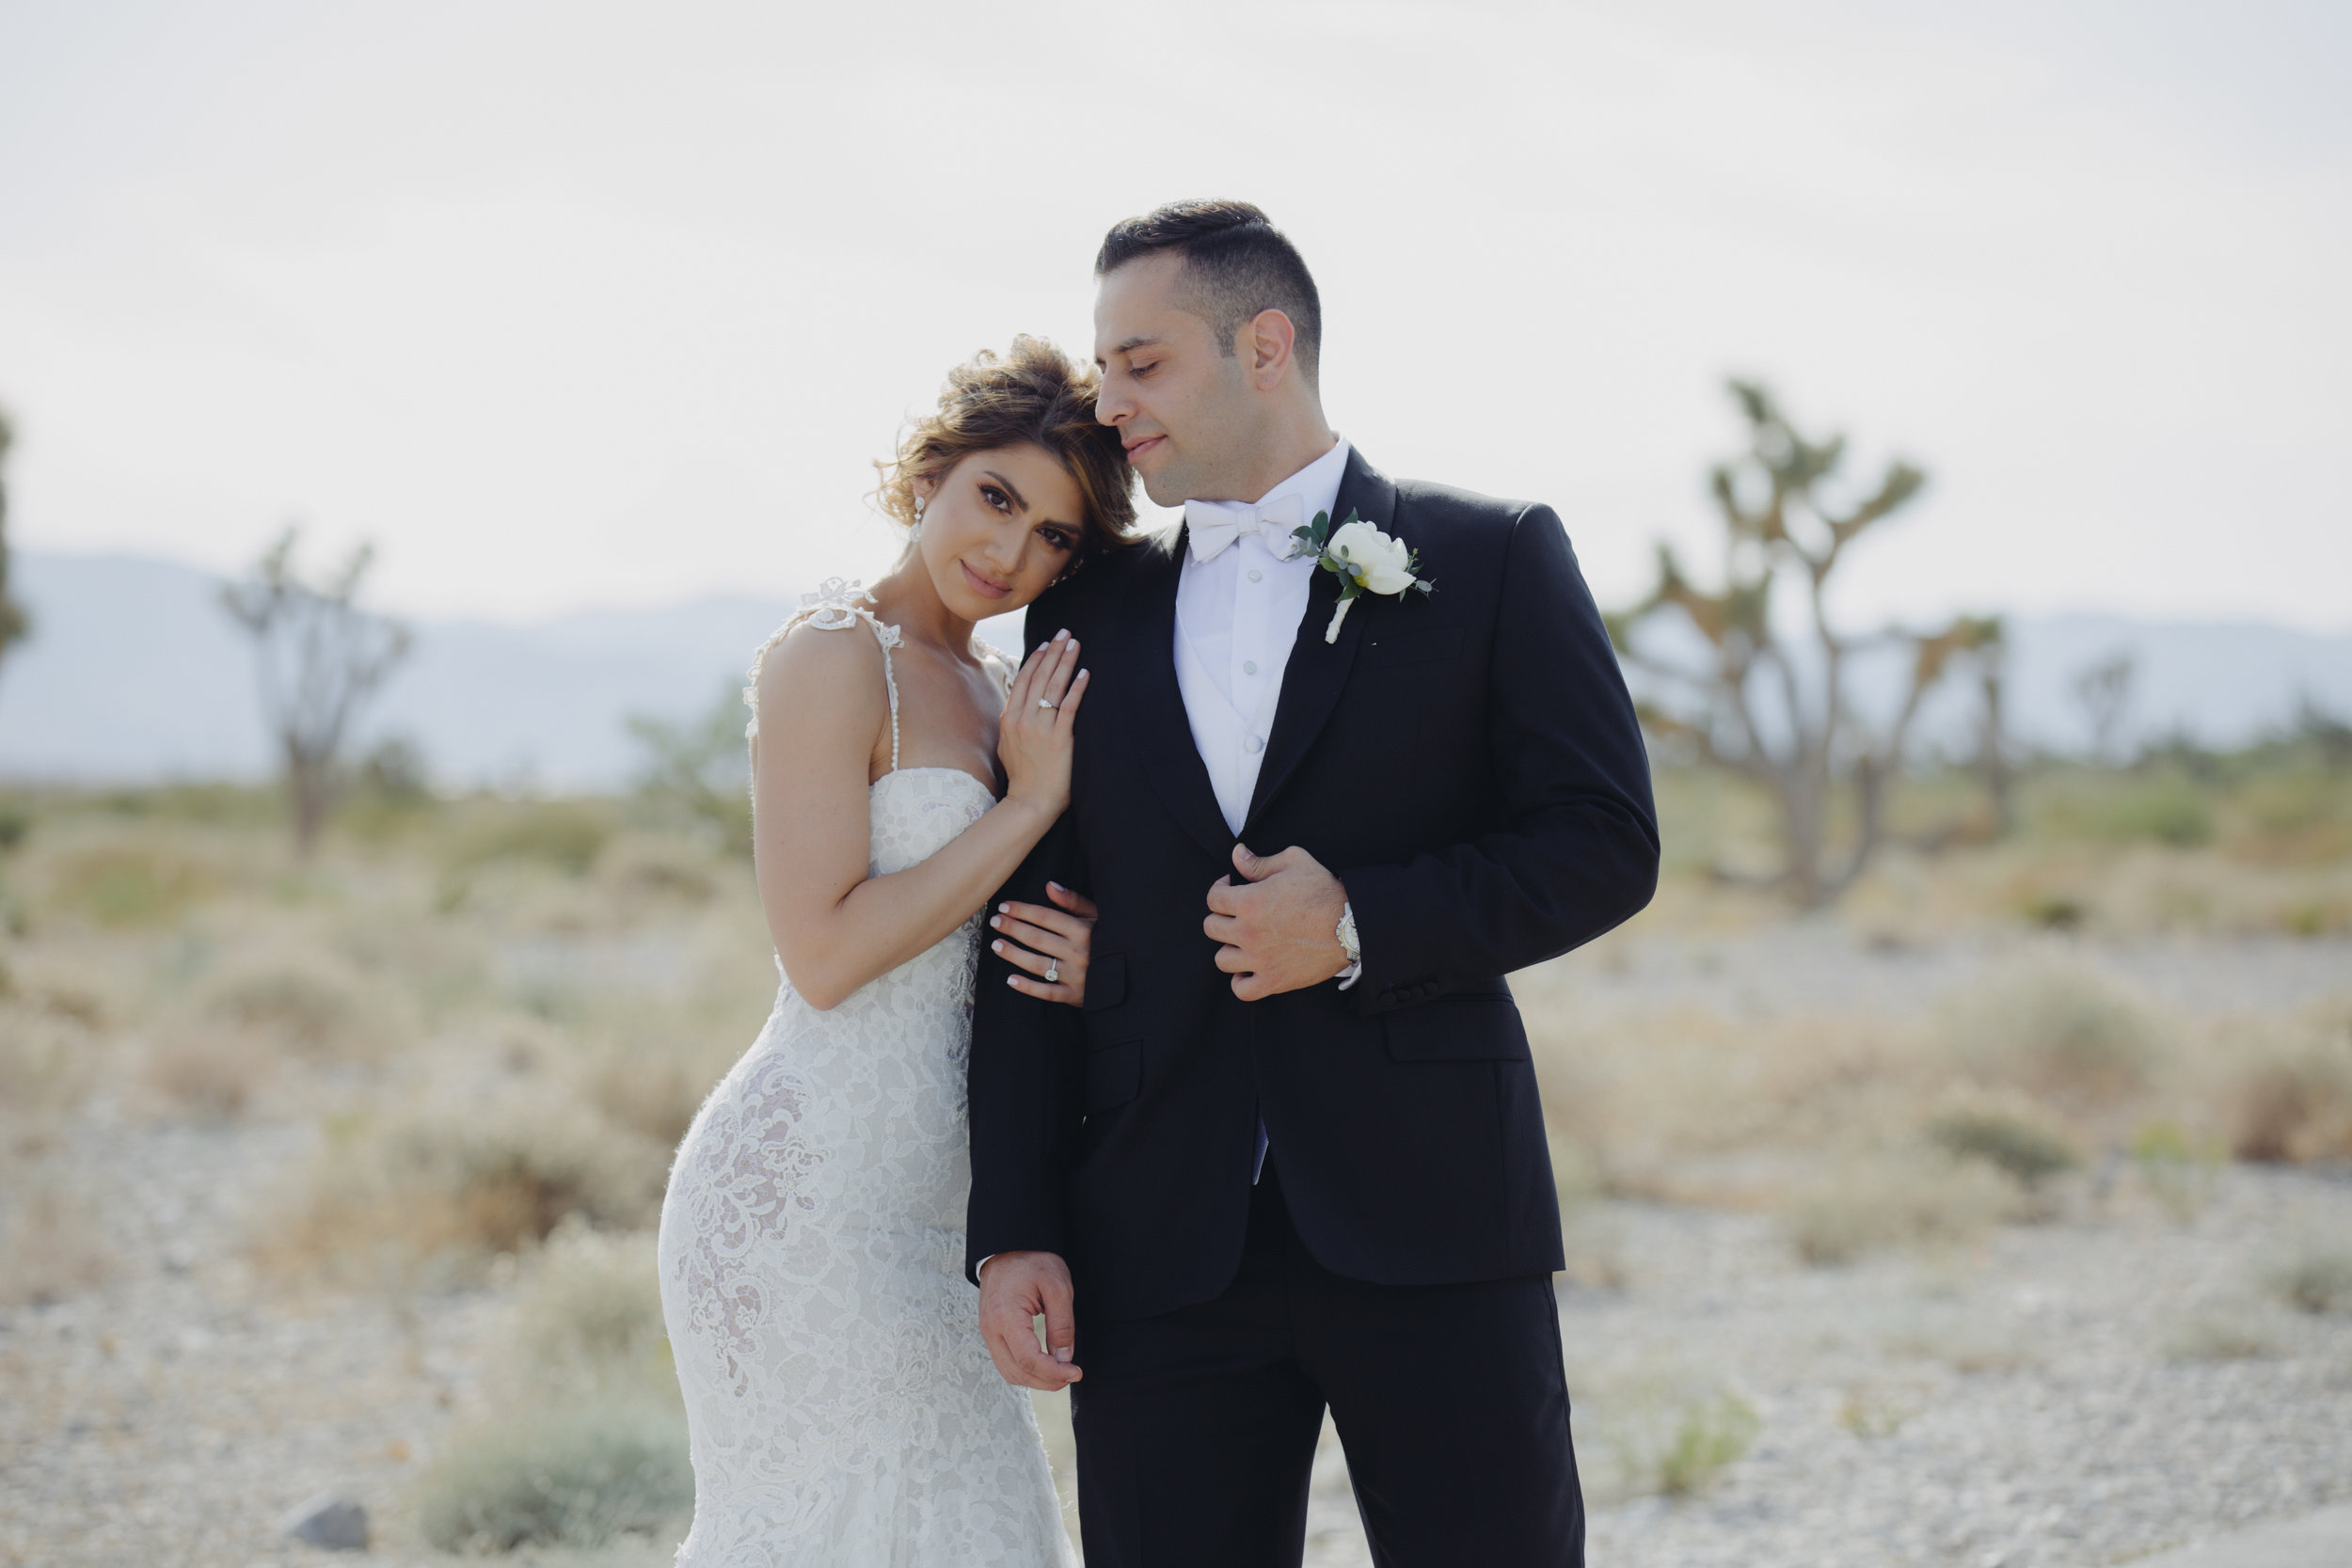 Wedding Portrait in desert.  Luxury Destination Wedding Planning and Event Design by  Andrea Eppolito Events  · Photos by  Stephen Salazar  · Flowers by  Naakiti Floral  ·  Rentals by RSVP · Lighting by  LED Unplugged   · Venue  Paiute Golf Course .  Dress by  Berta  · Shoes by  Jimmy Choo